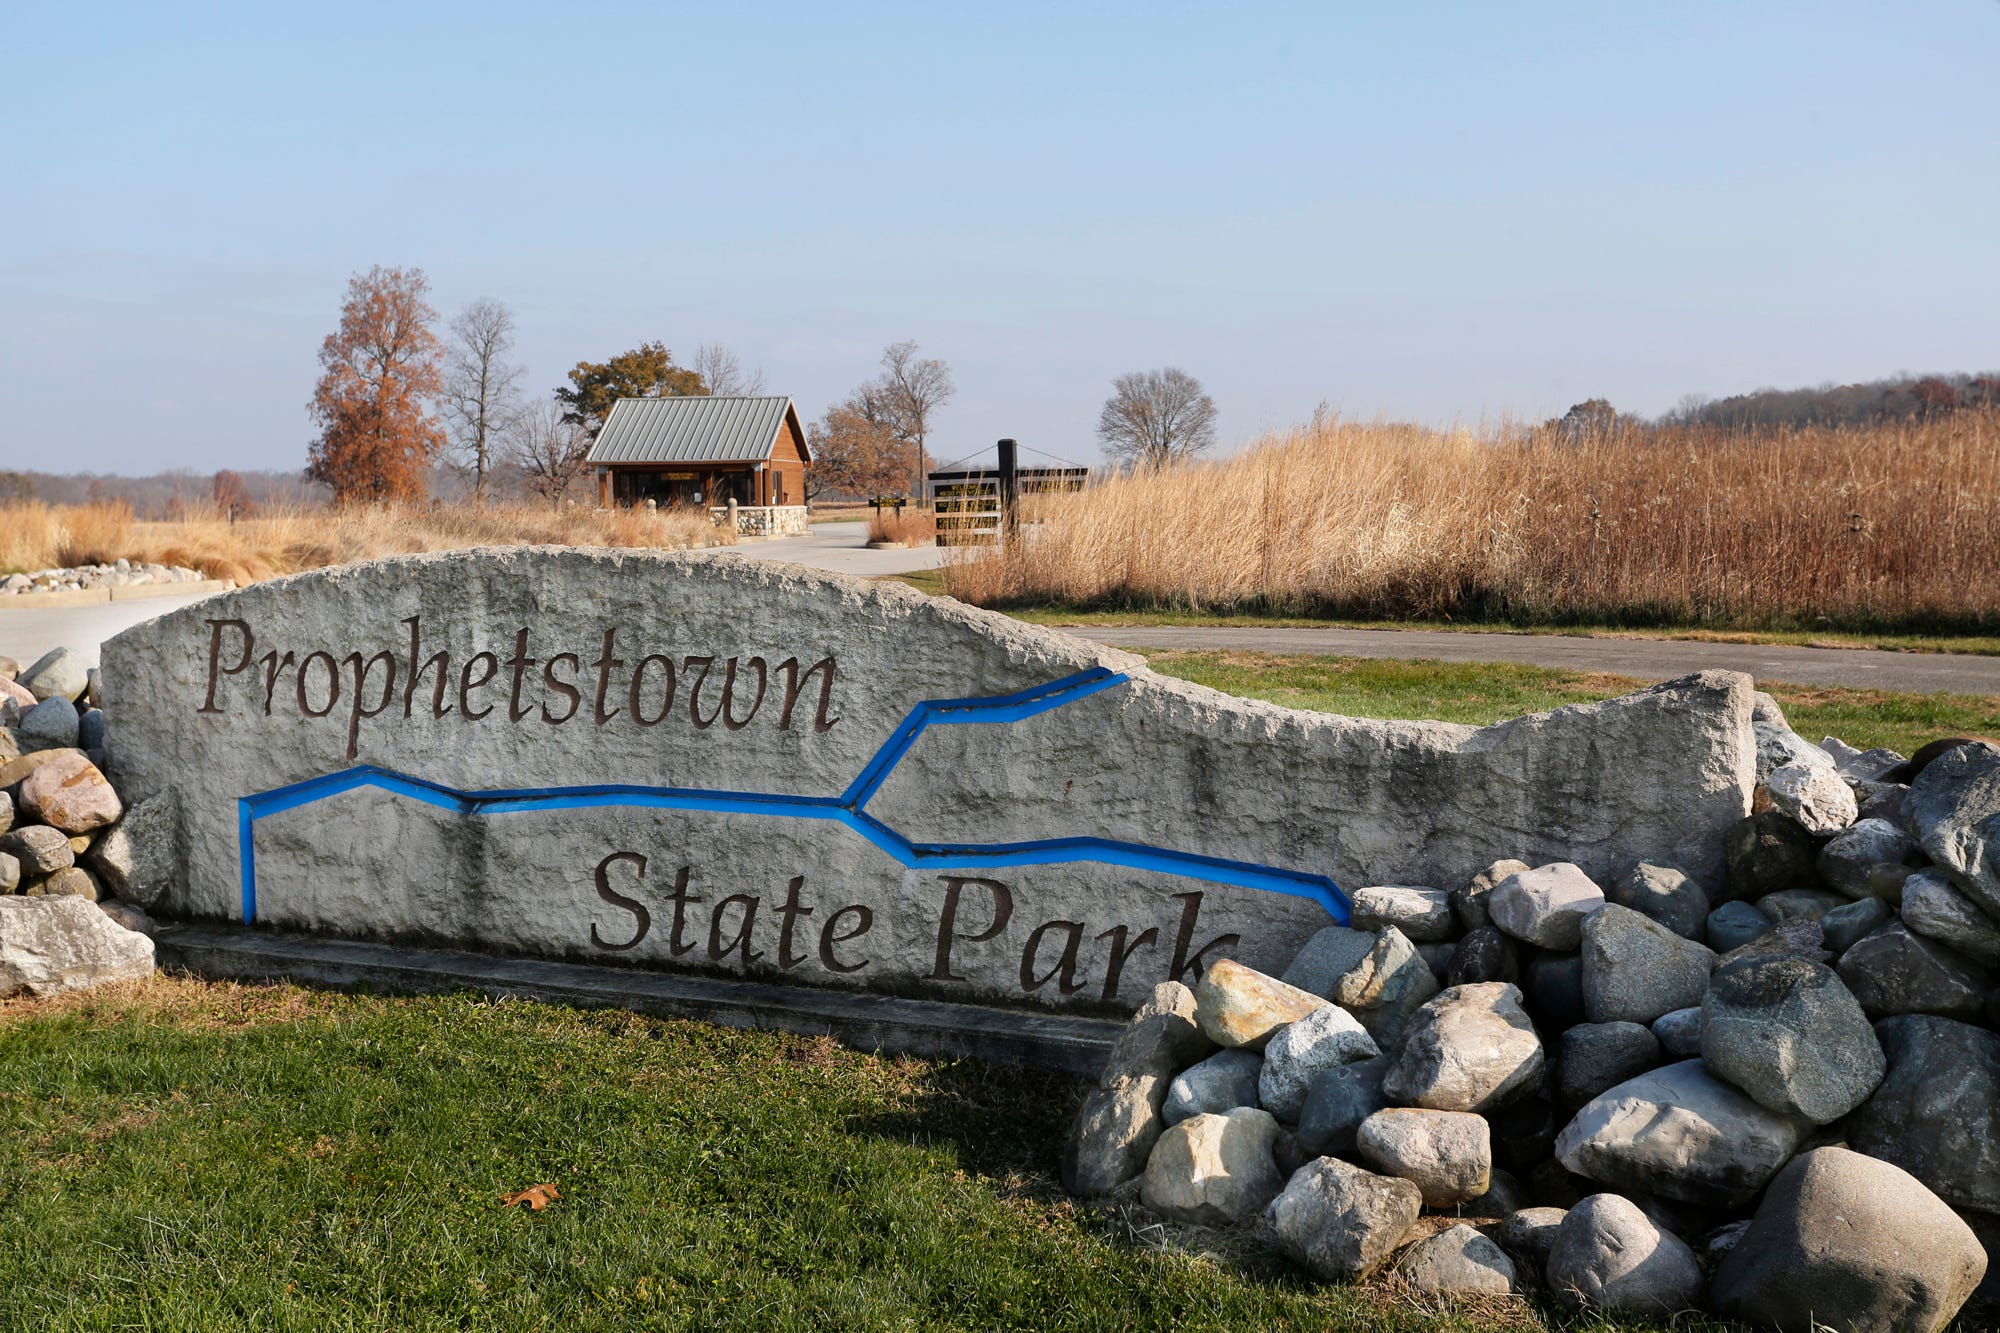 Laf Prophetstown State Park